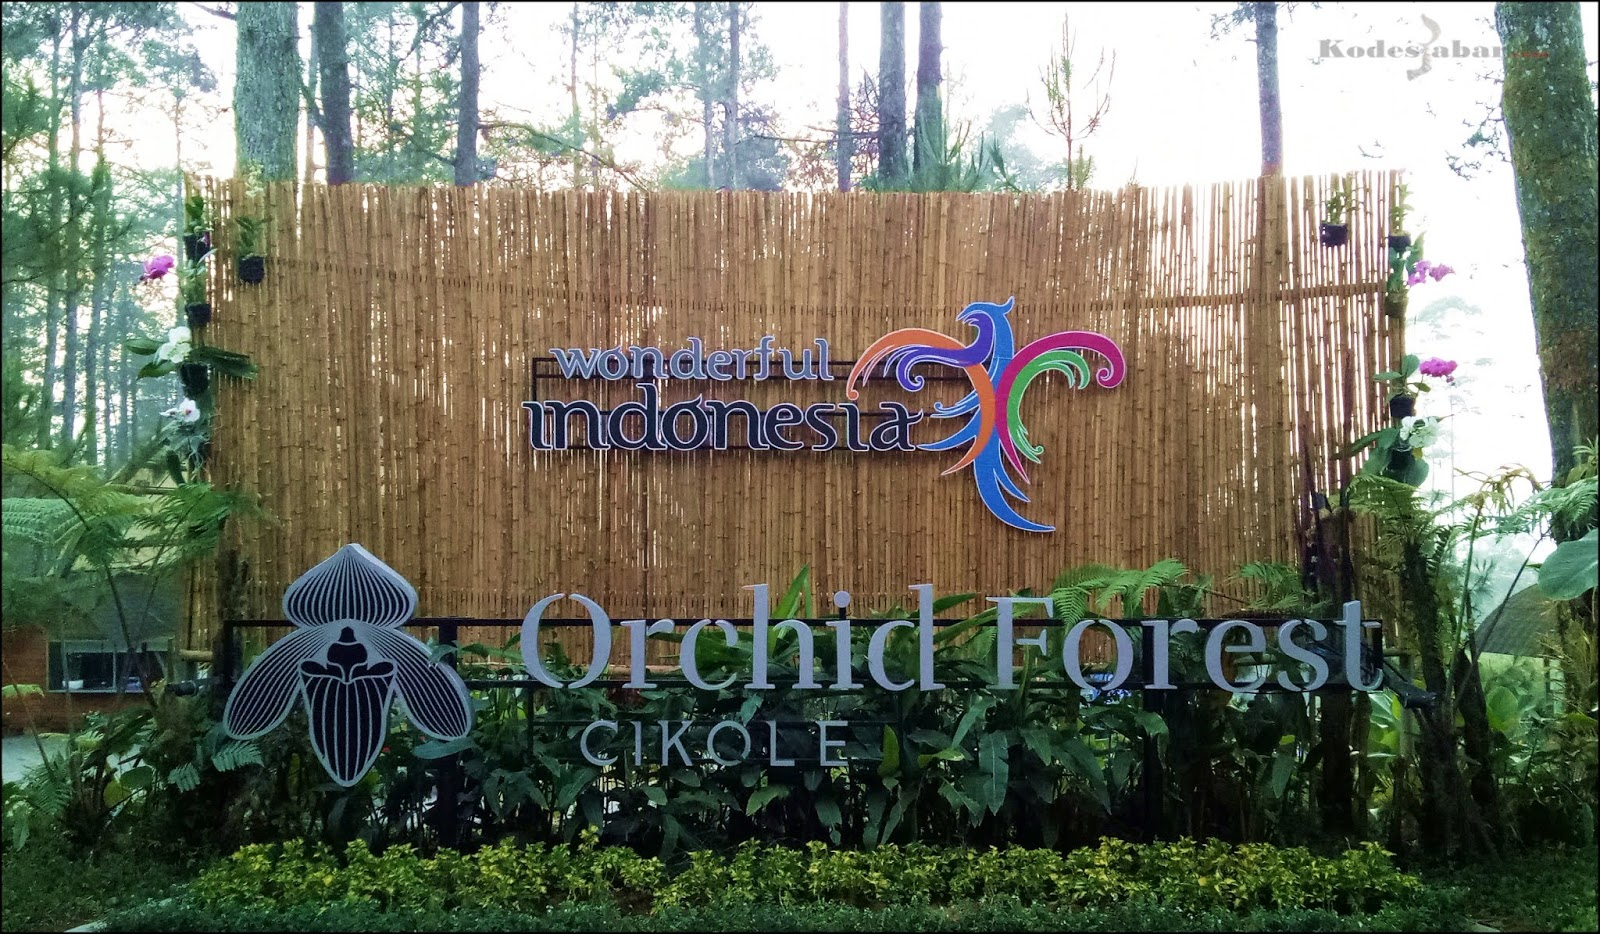 Orchid Forest Cikole, Destinasi Wisata Alam Paling Instagramable di Bandung